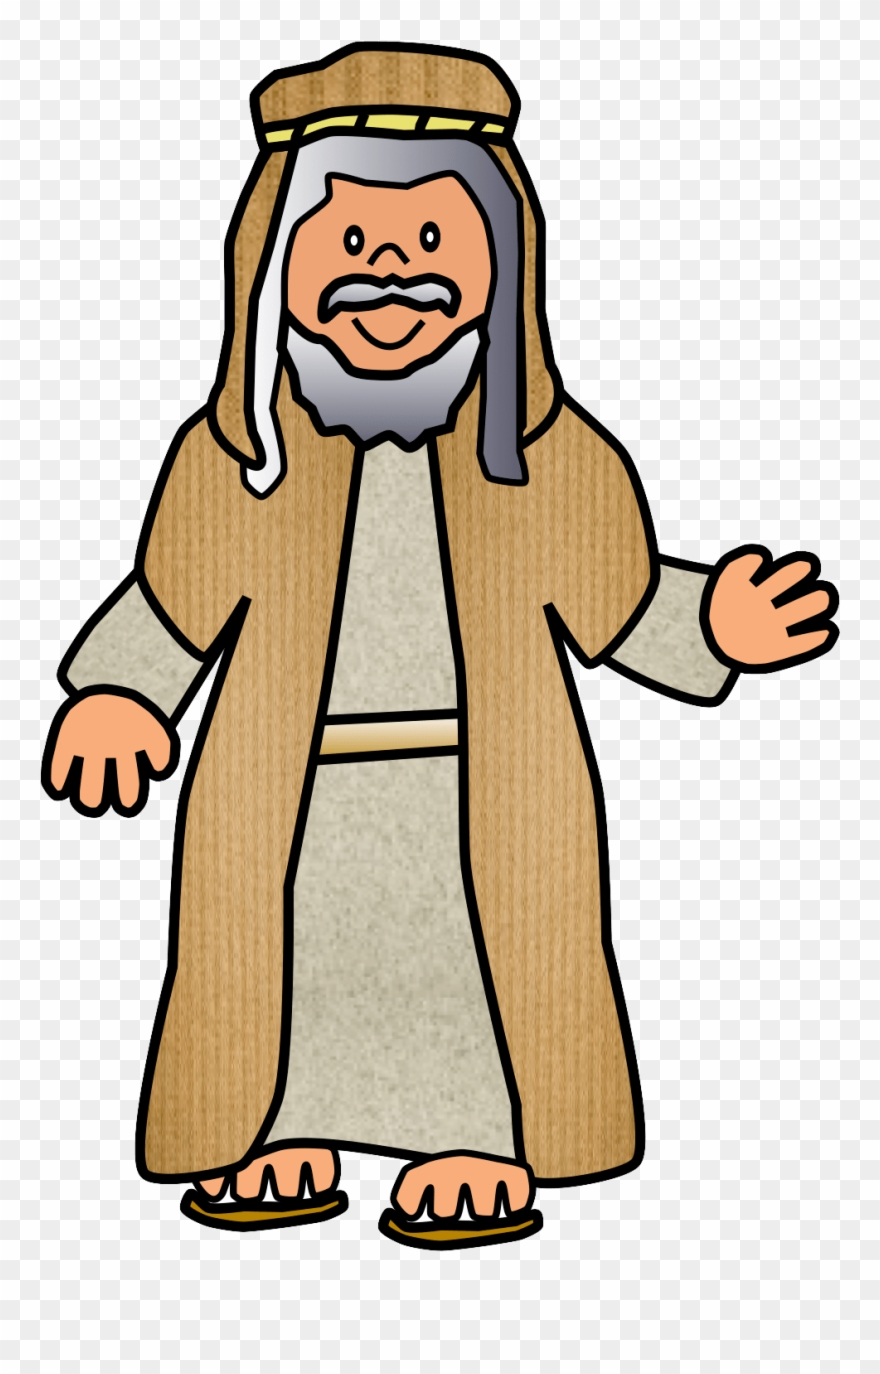 bible characters pictures for bible characters cartoon clipart clip art library